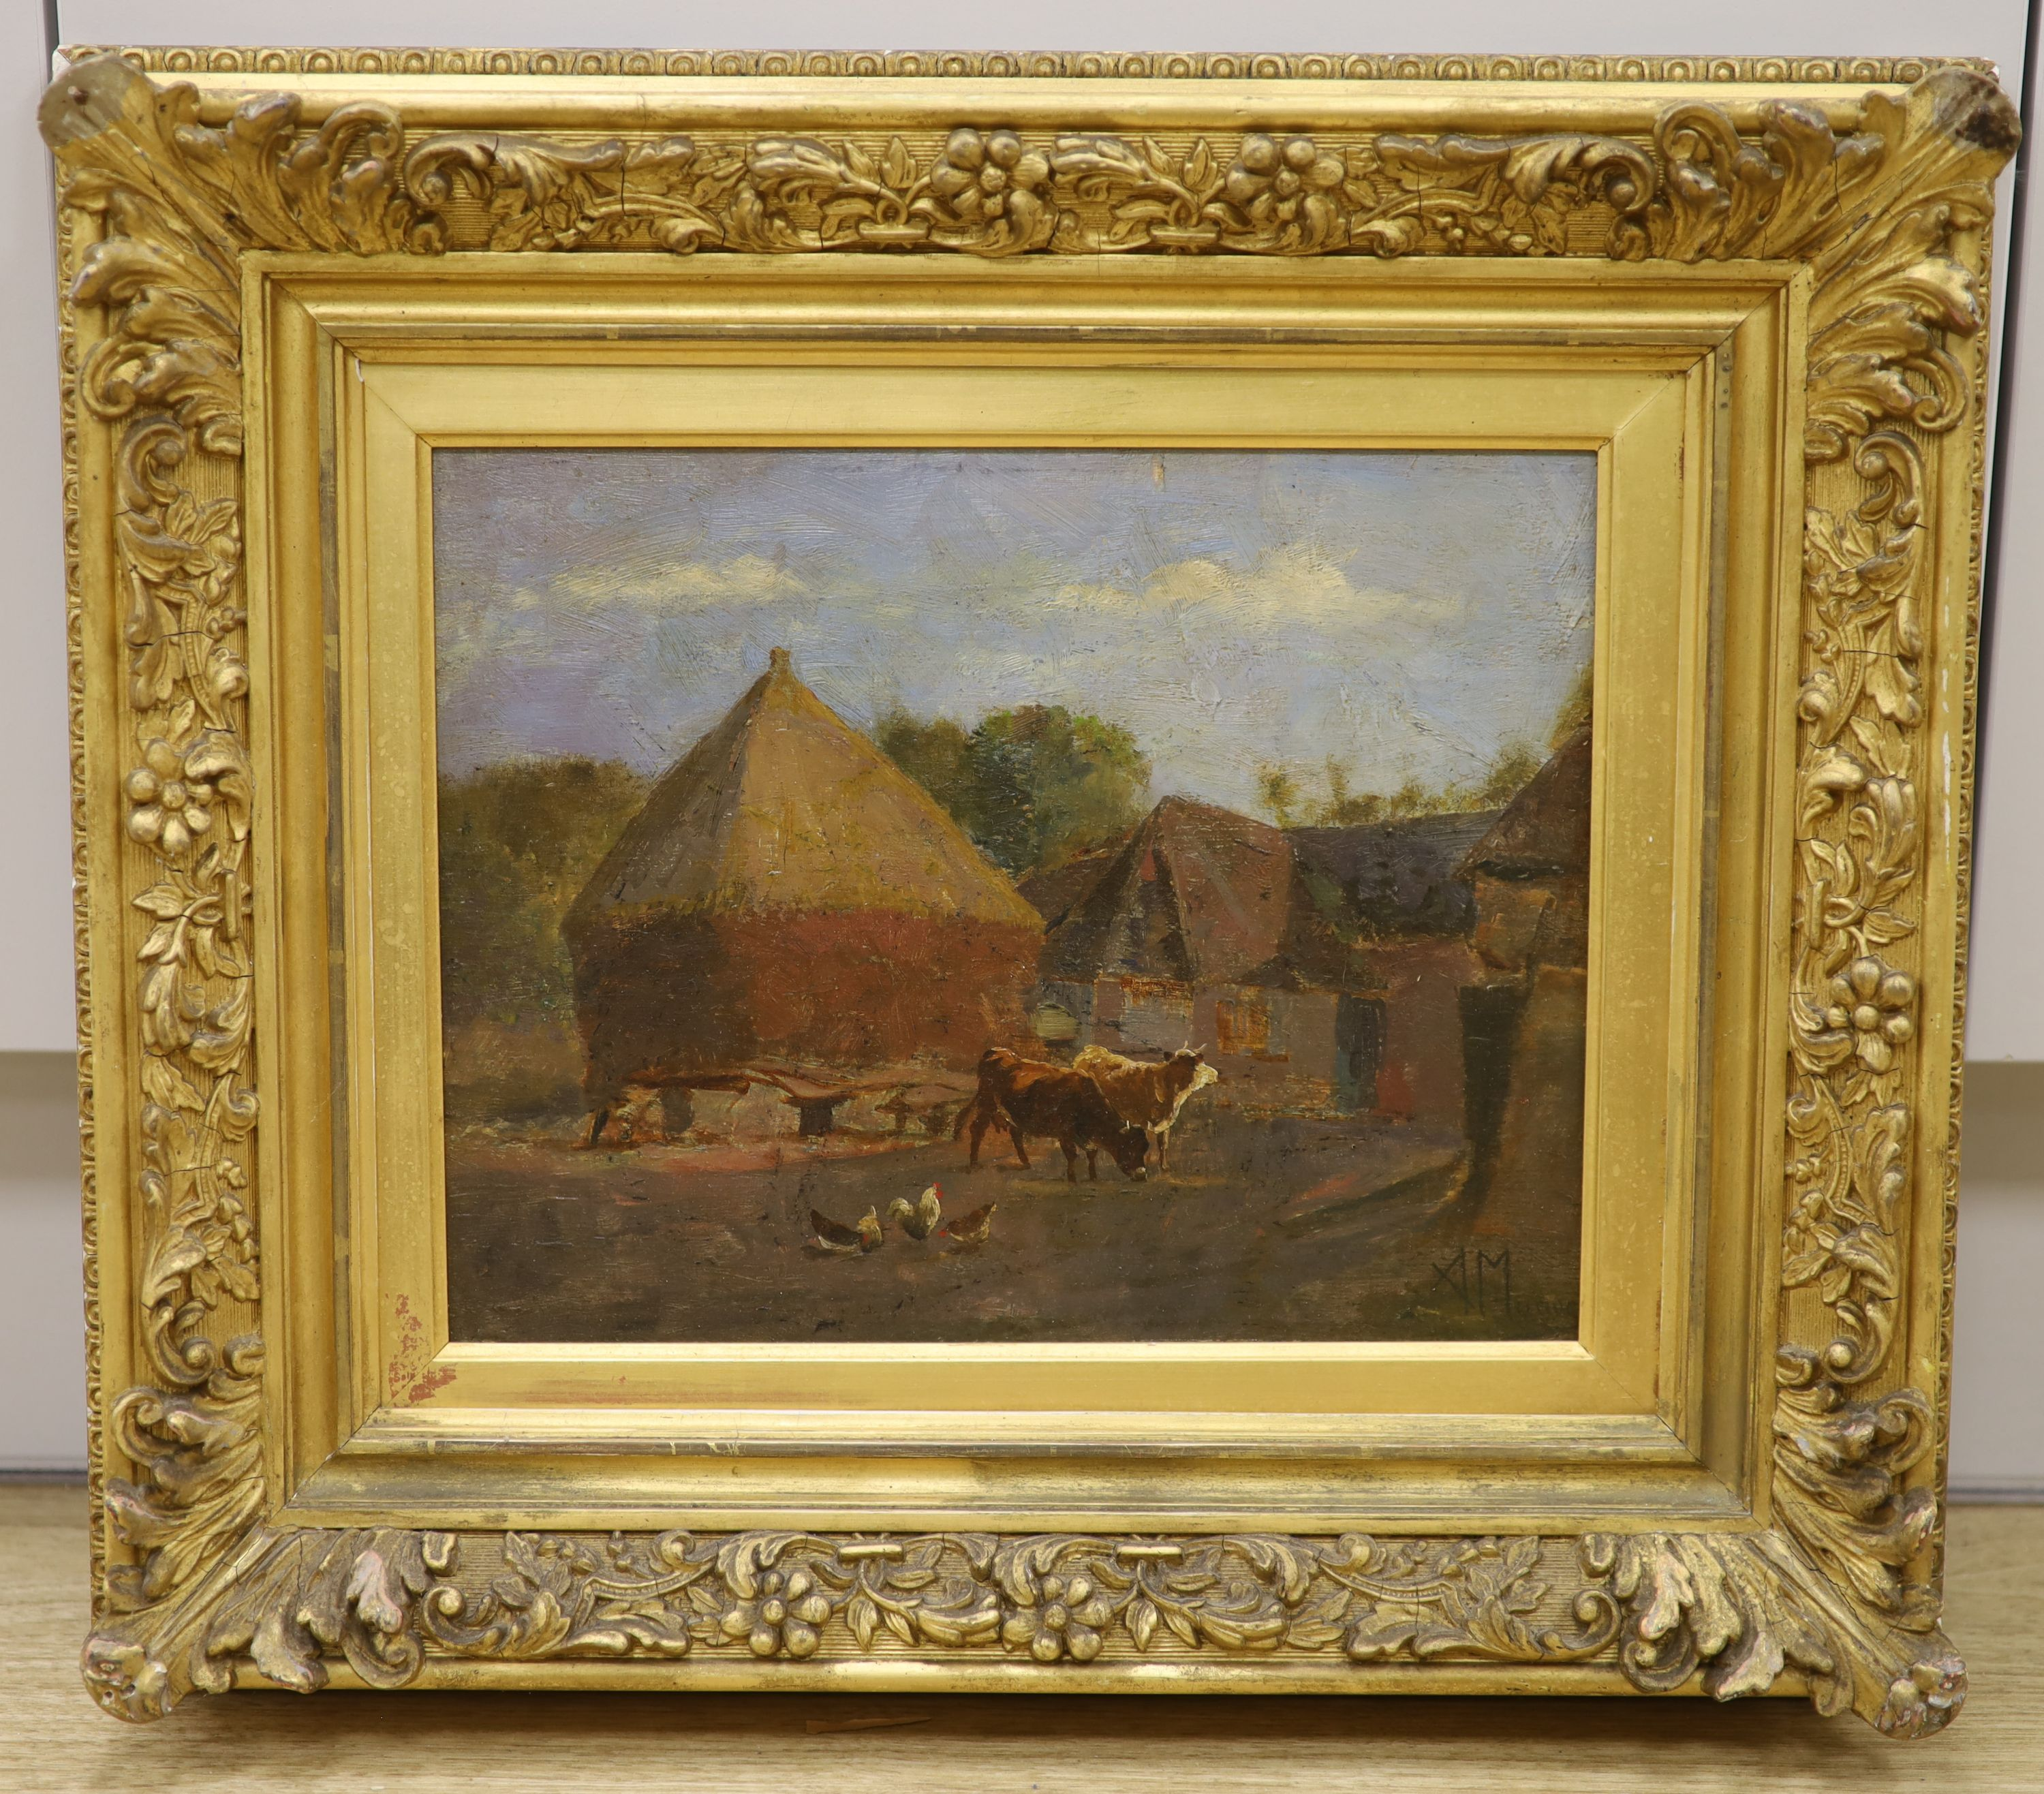 Attributed to Anton Mauve, oil on board, Farmyard with cattle and chickens, signed, 23 x - Image 2 of 4